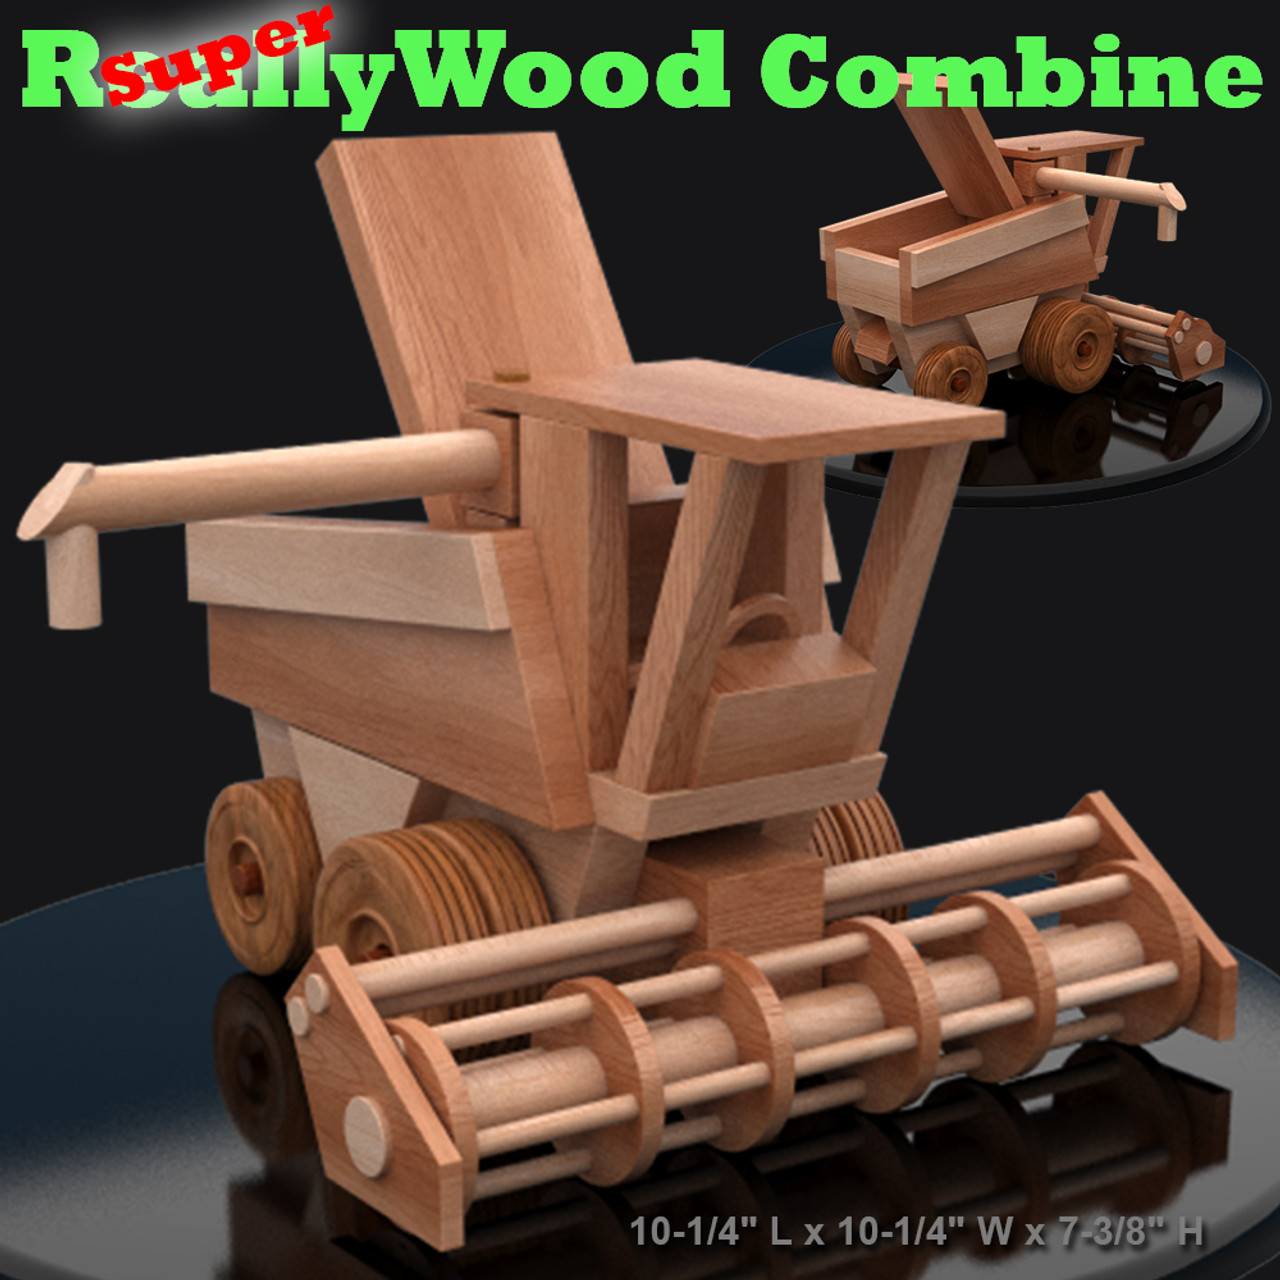 Super Reallywood Combine Wood Toy Plans Pdf Download